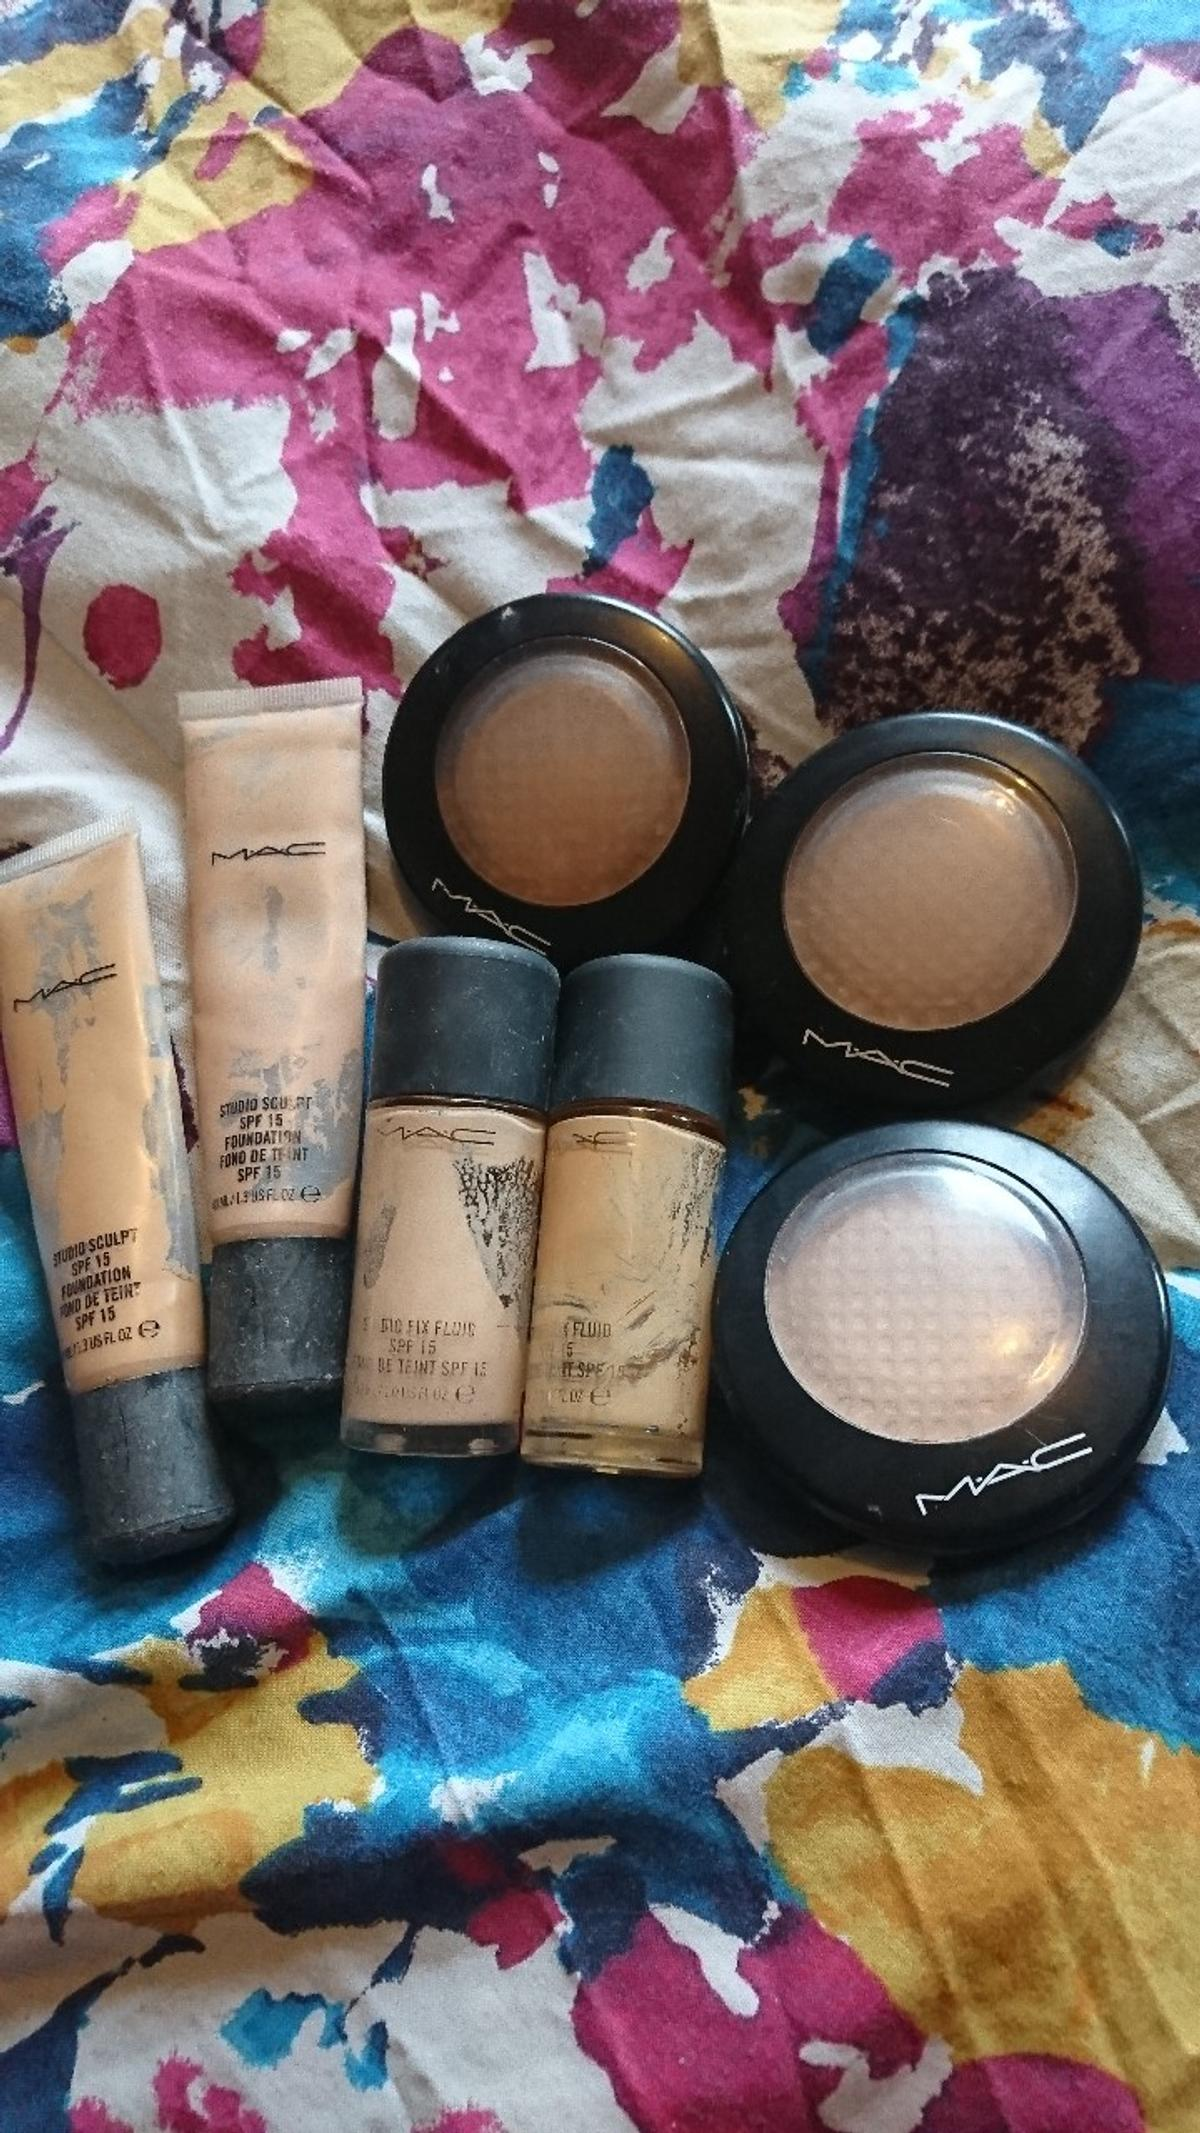 Empty Mac Makeup Containers In